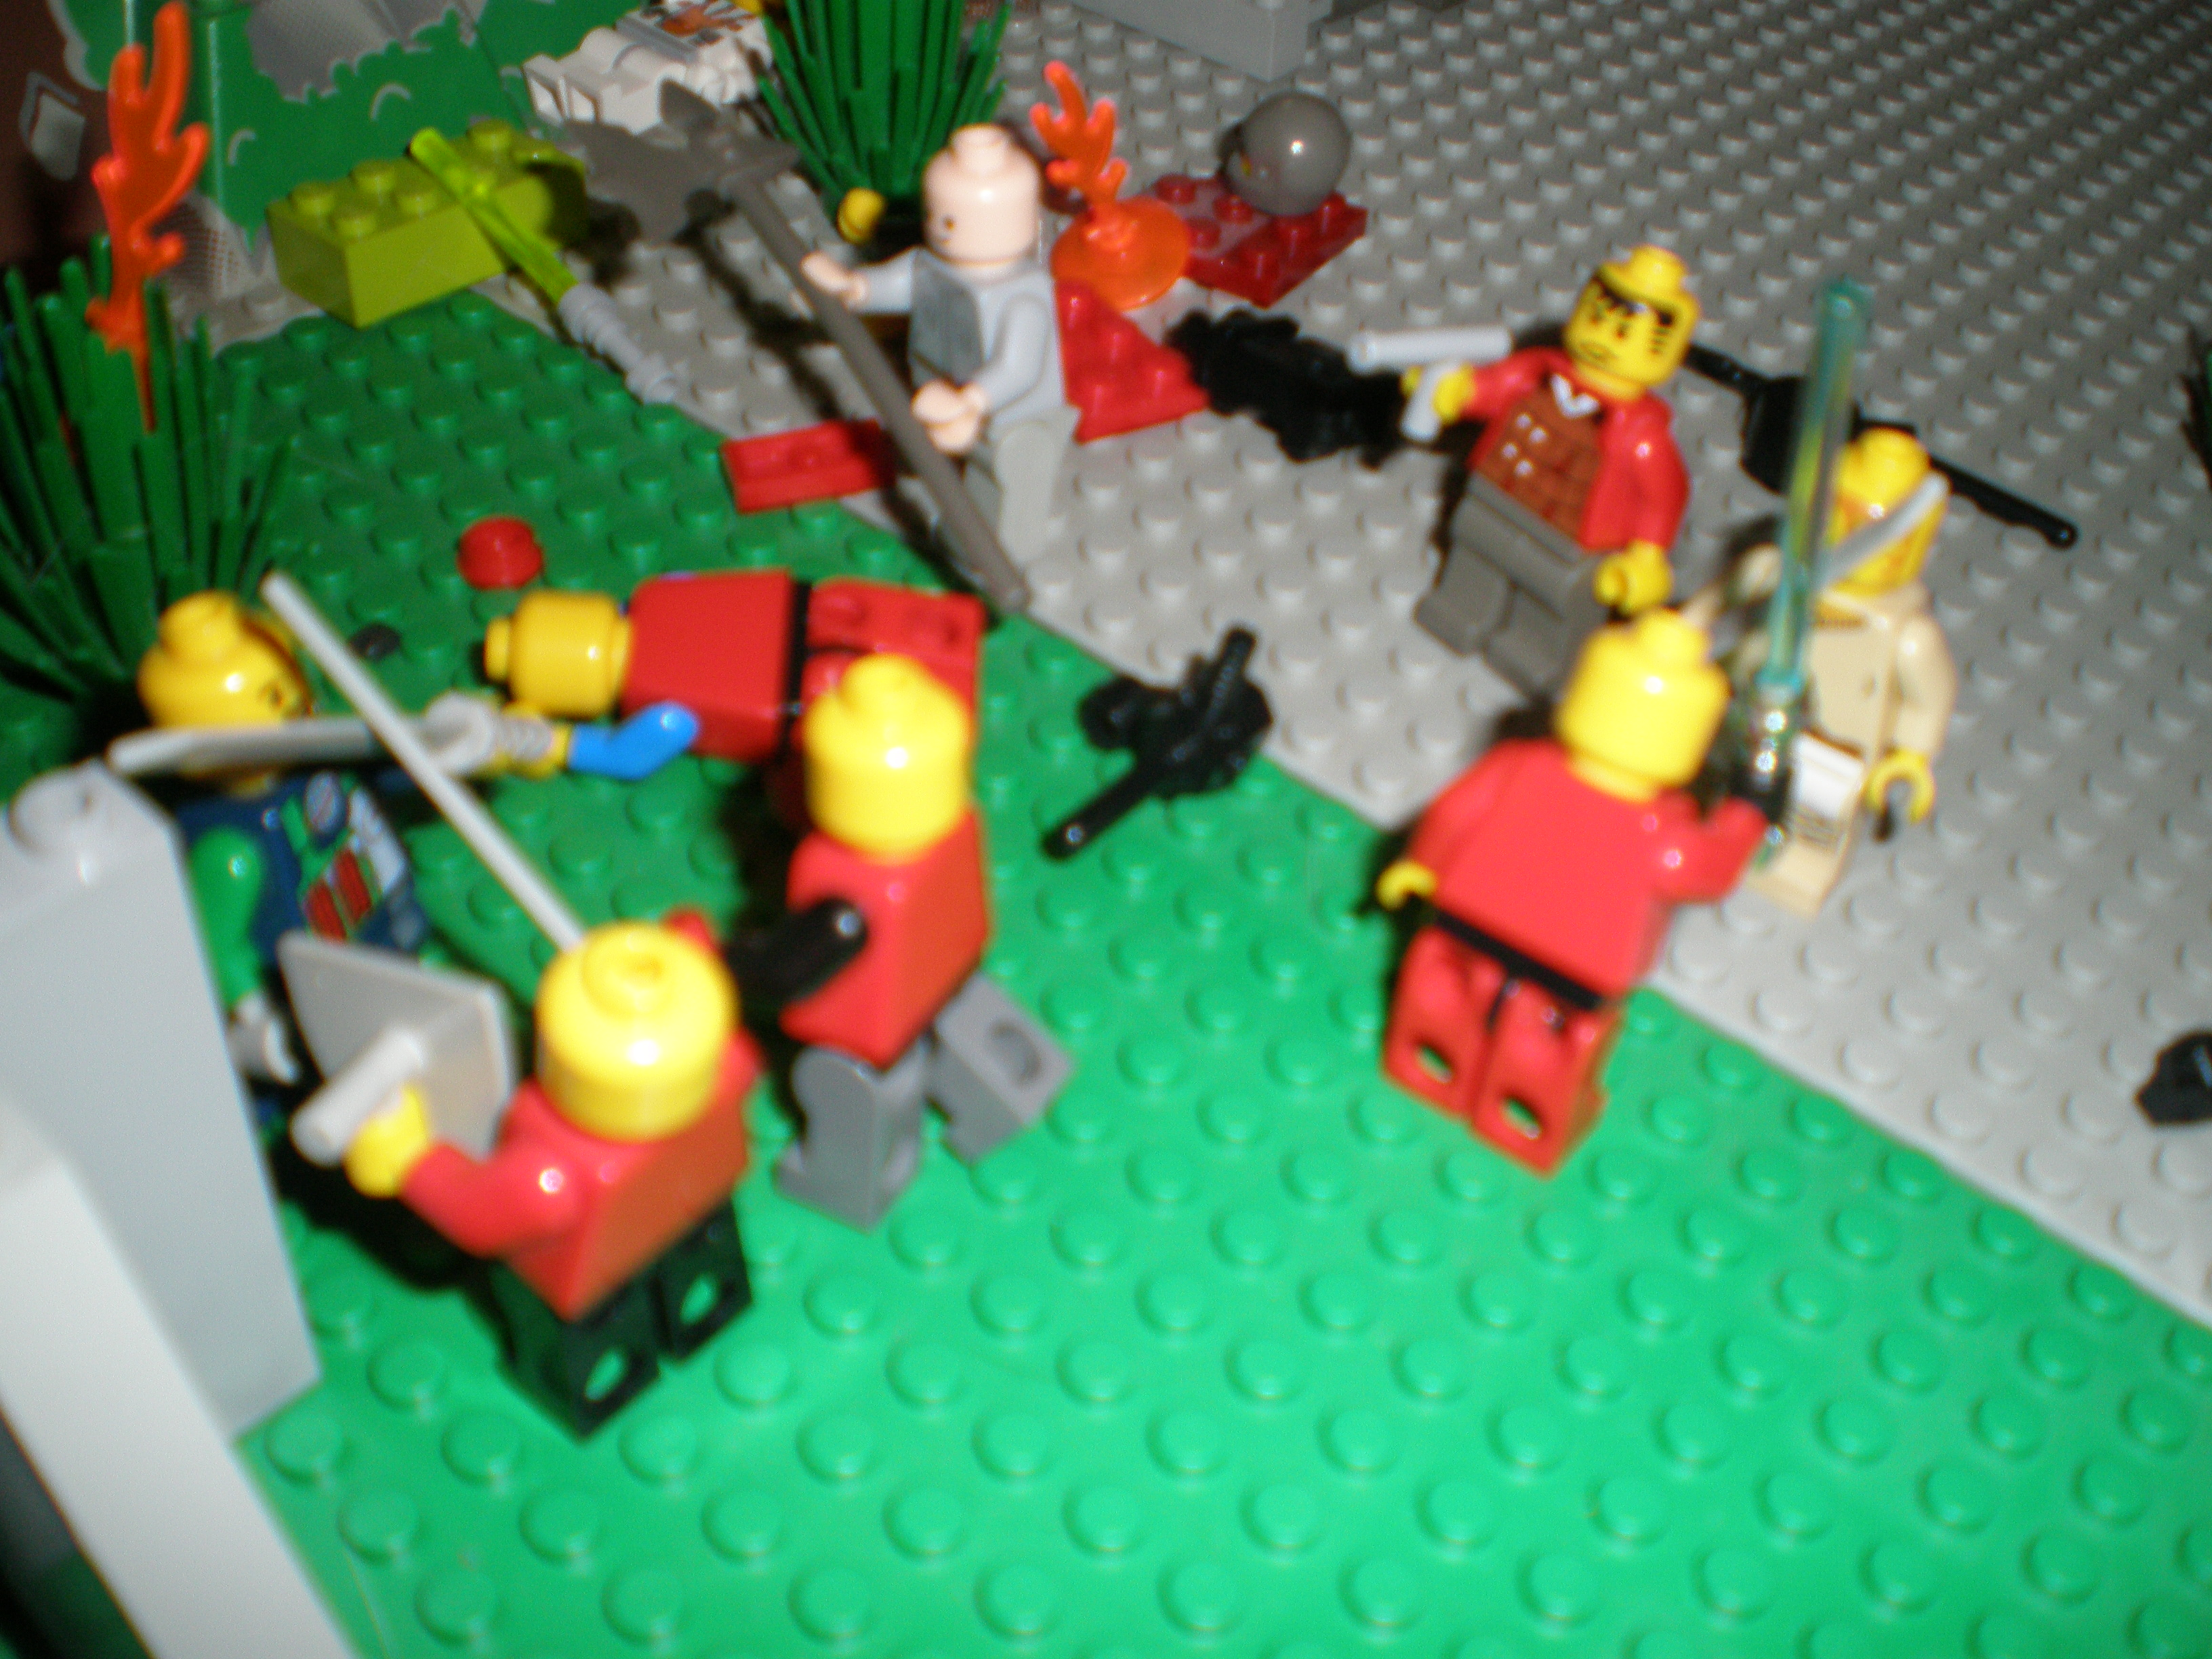 armagendon_lego_battle_013.jpg